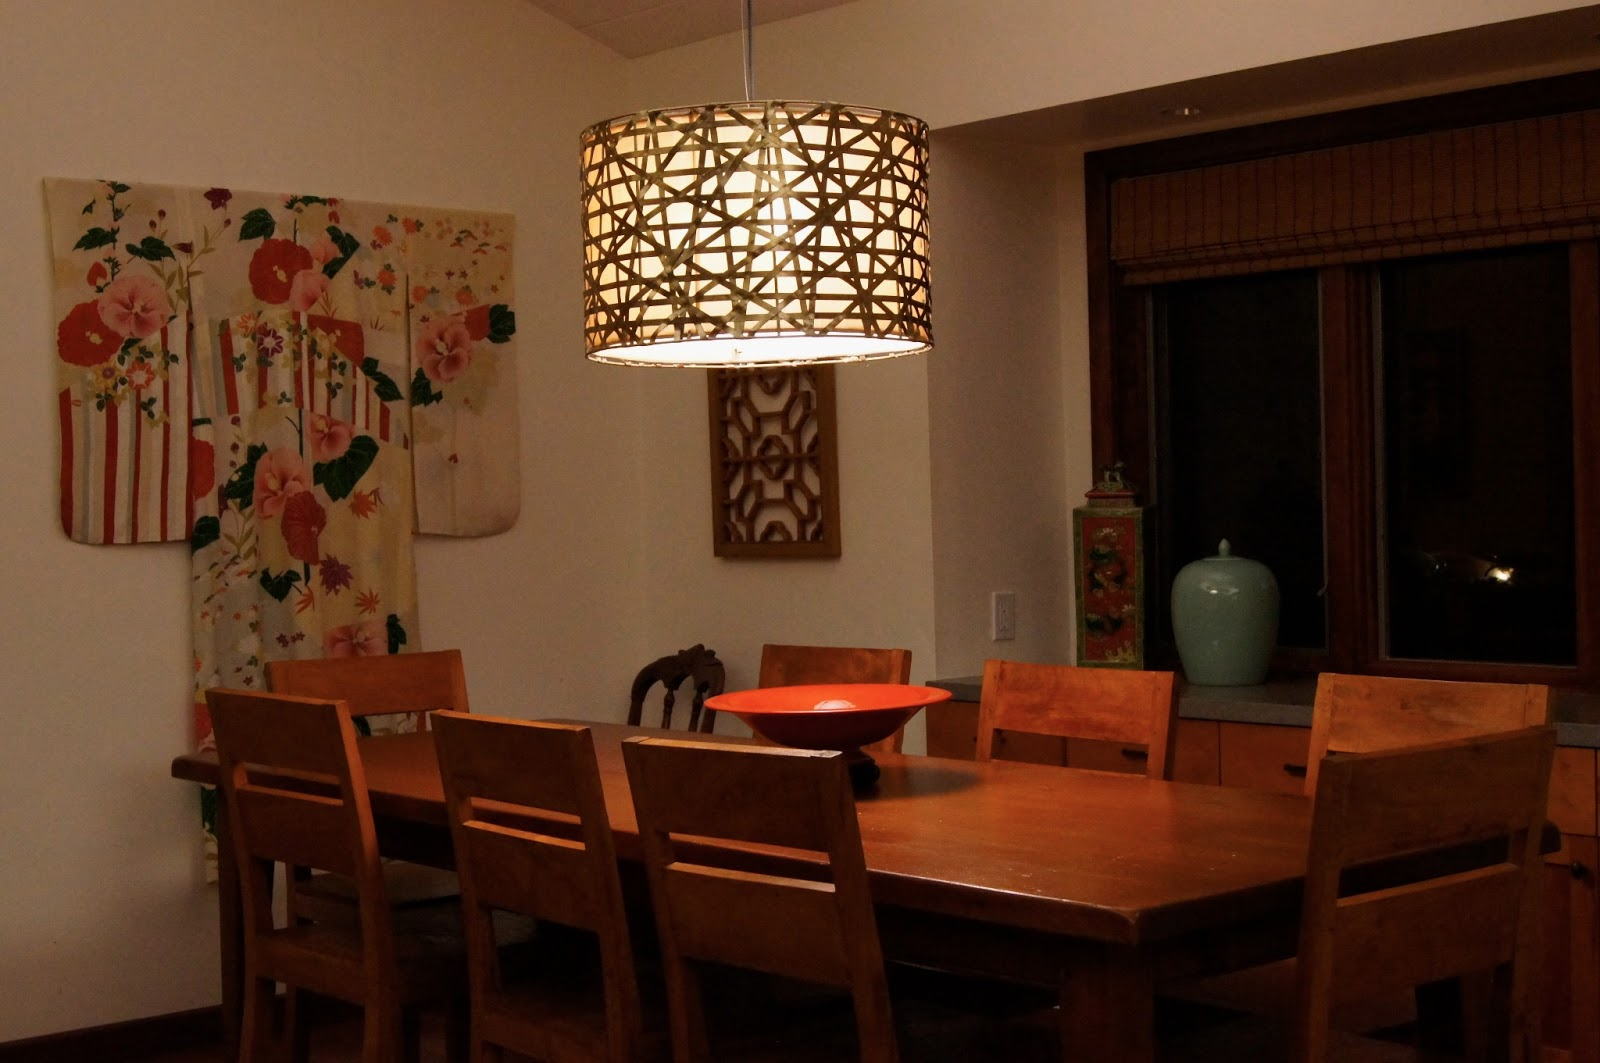 Price Style & Design: New Dining Room Light Fixture Installed! - Dining Room Light Fixtures